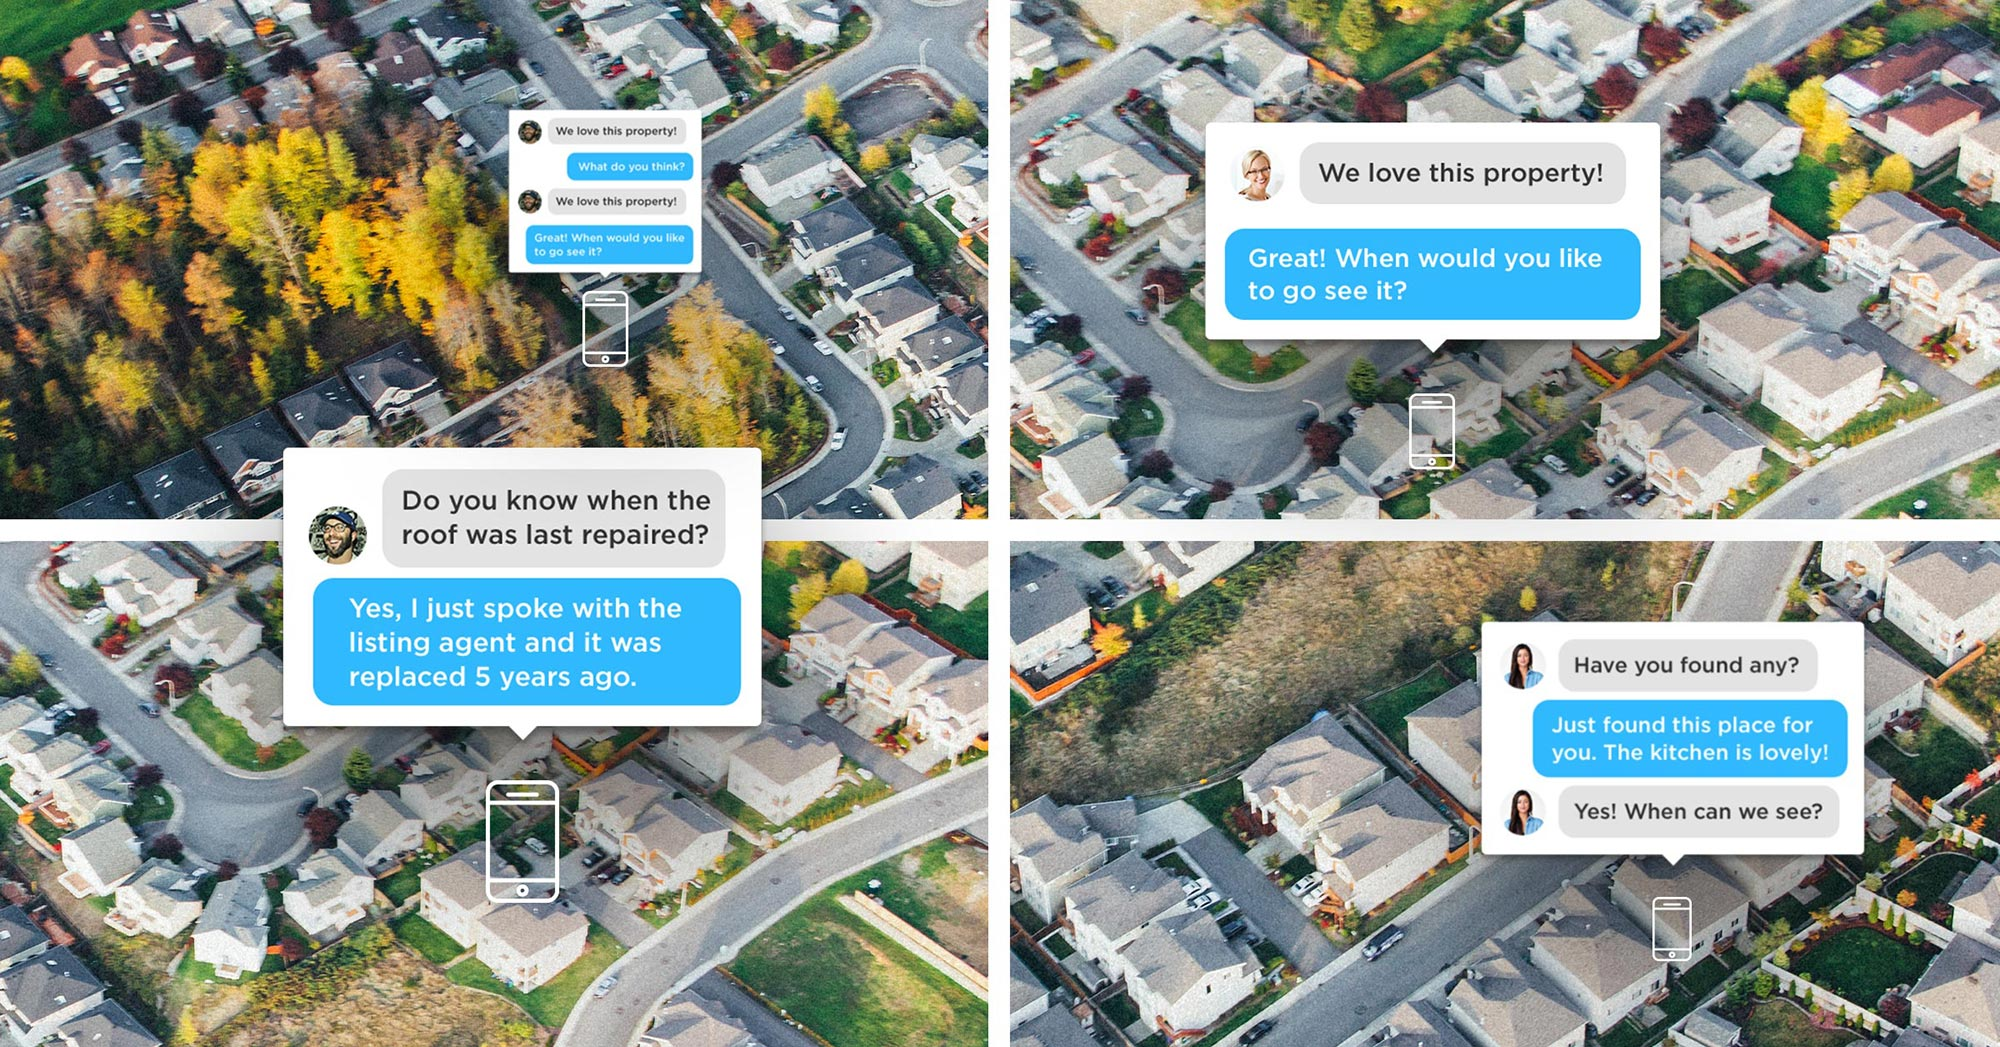 Real Estate Messaging Apps Changing the Industry